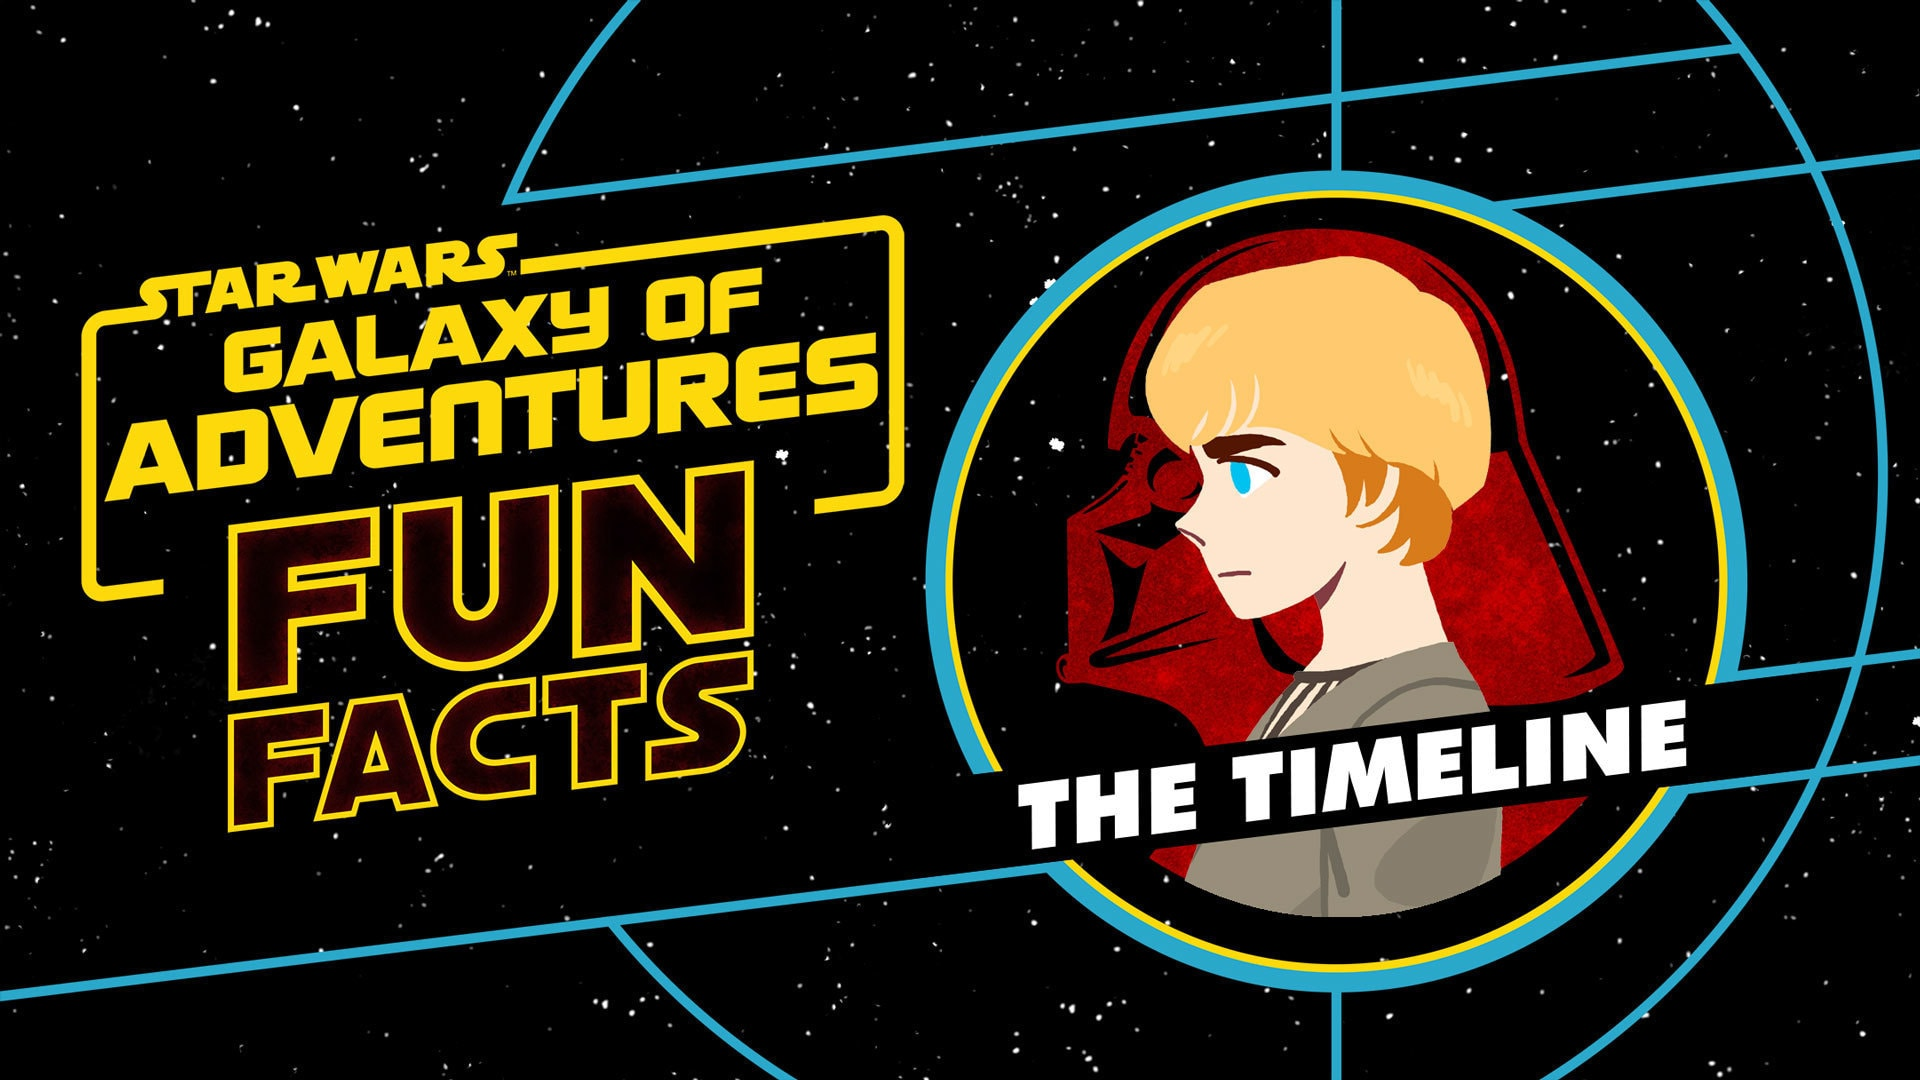 The Star Wars Timeline | Star Wars Galaxy of Adventures Fun Facts